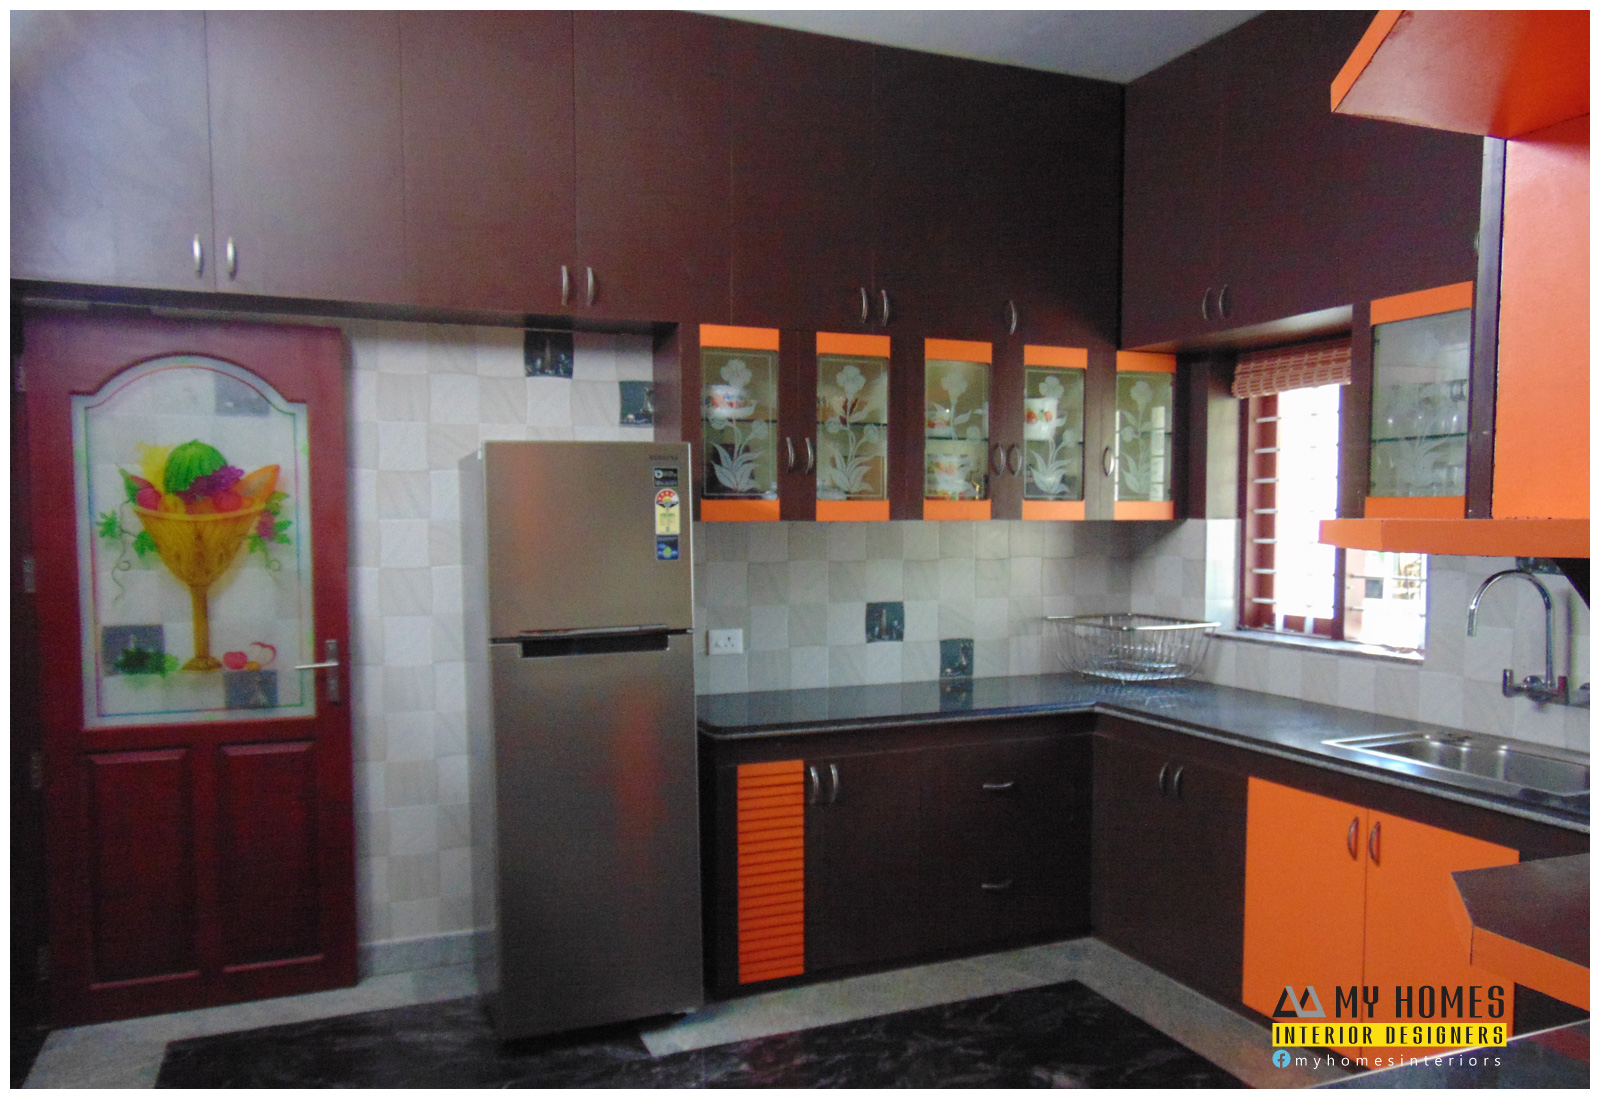 Kerala kitchen designs from top interior designers thrissur for Kitchen design kerala